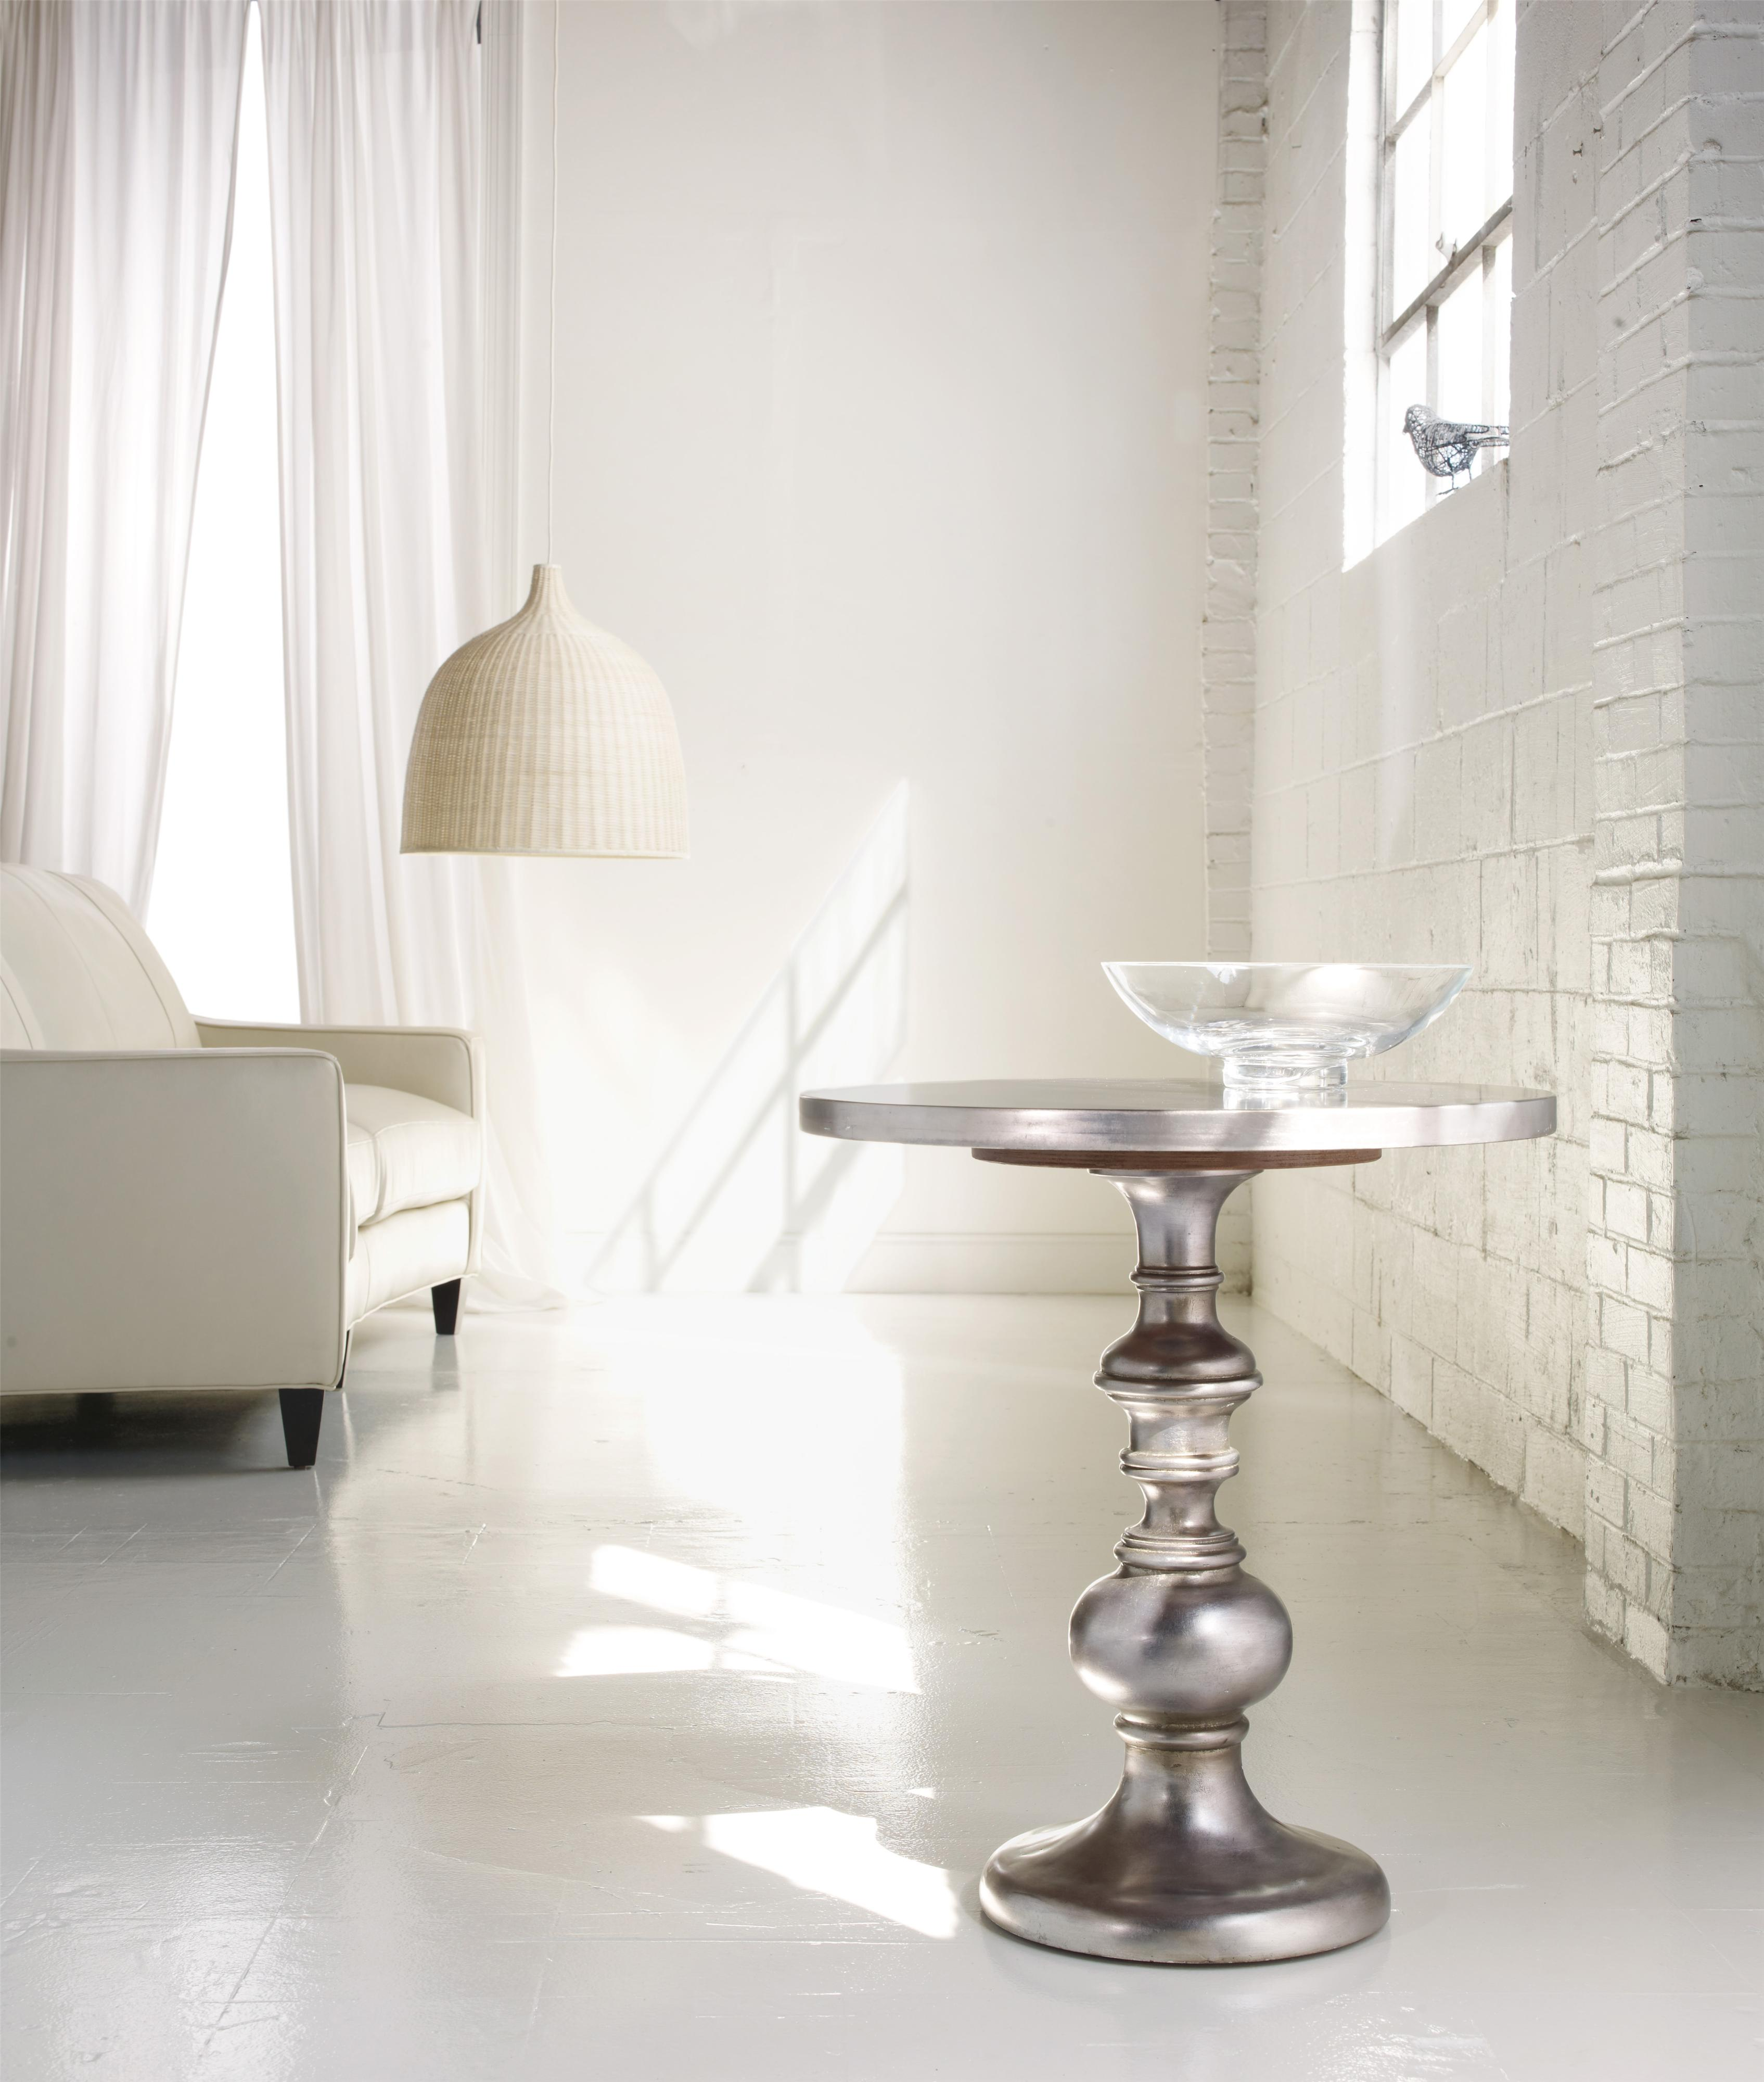 Zinc Finish Furniture Kenmar Turned Pedestal Table With Iridescent Faux Zinc Finish By